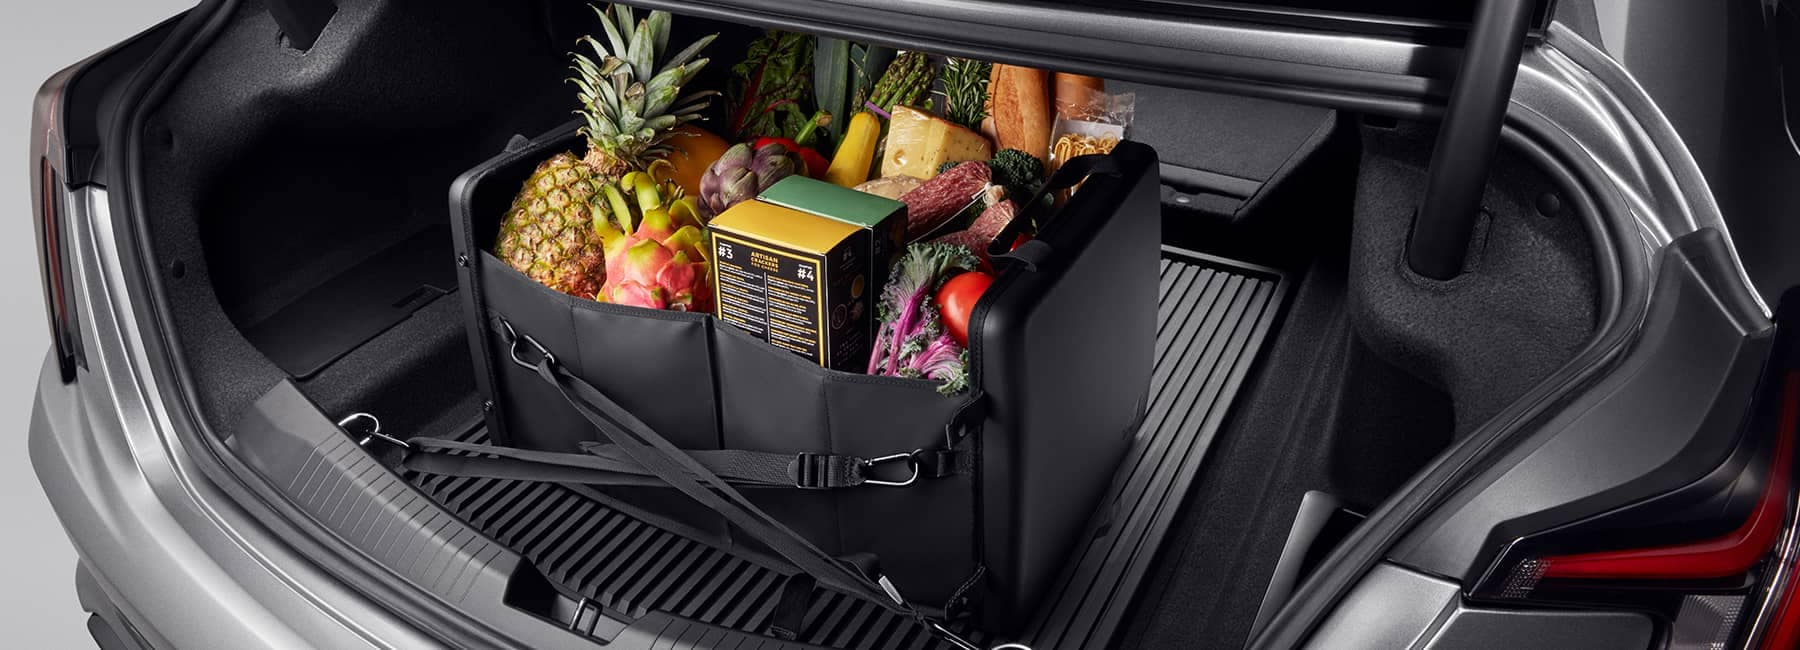 Cadillac Trunk Accessories Banner, Fruit and other goods from the grocery store secured in the trunk of a Cadillac Sedan